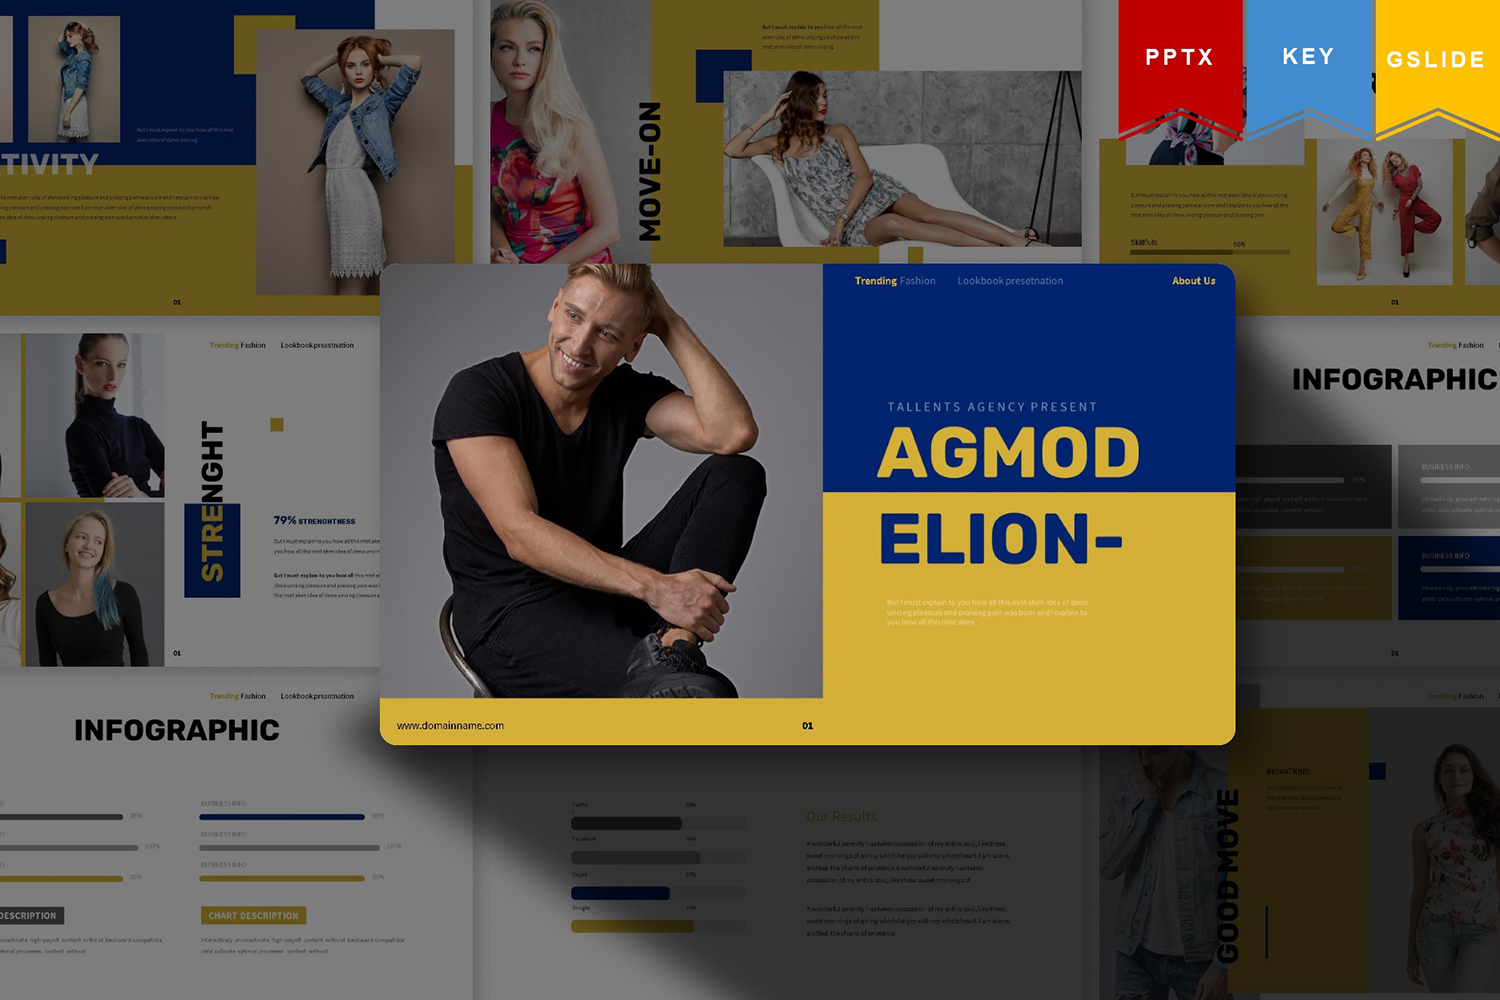 Agmodelion | PowerPoint Template